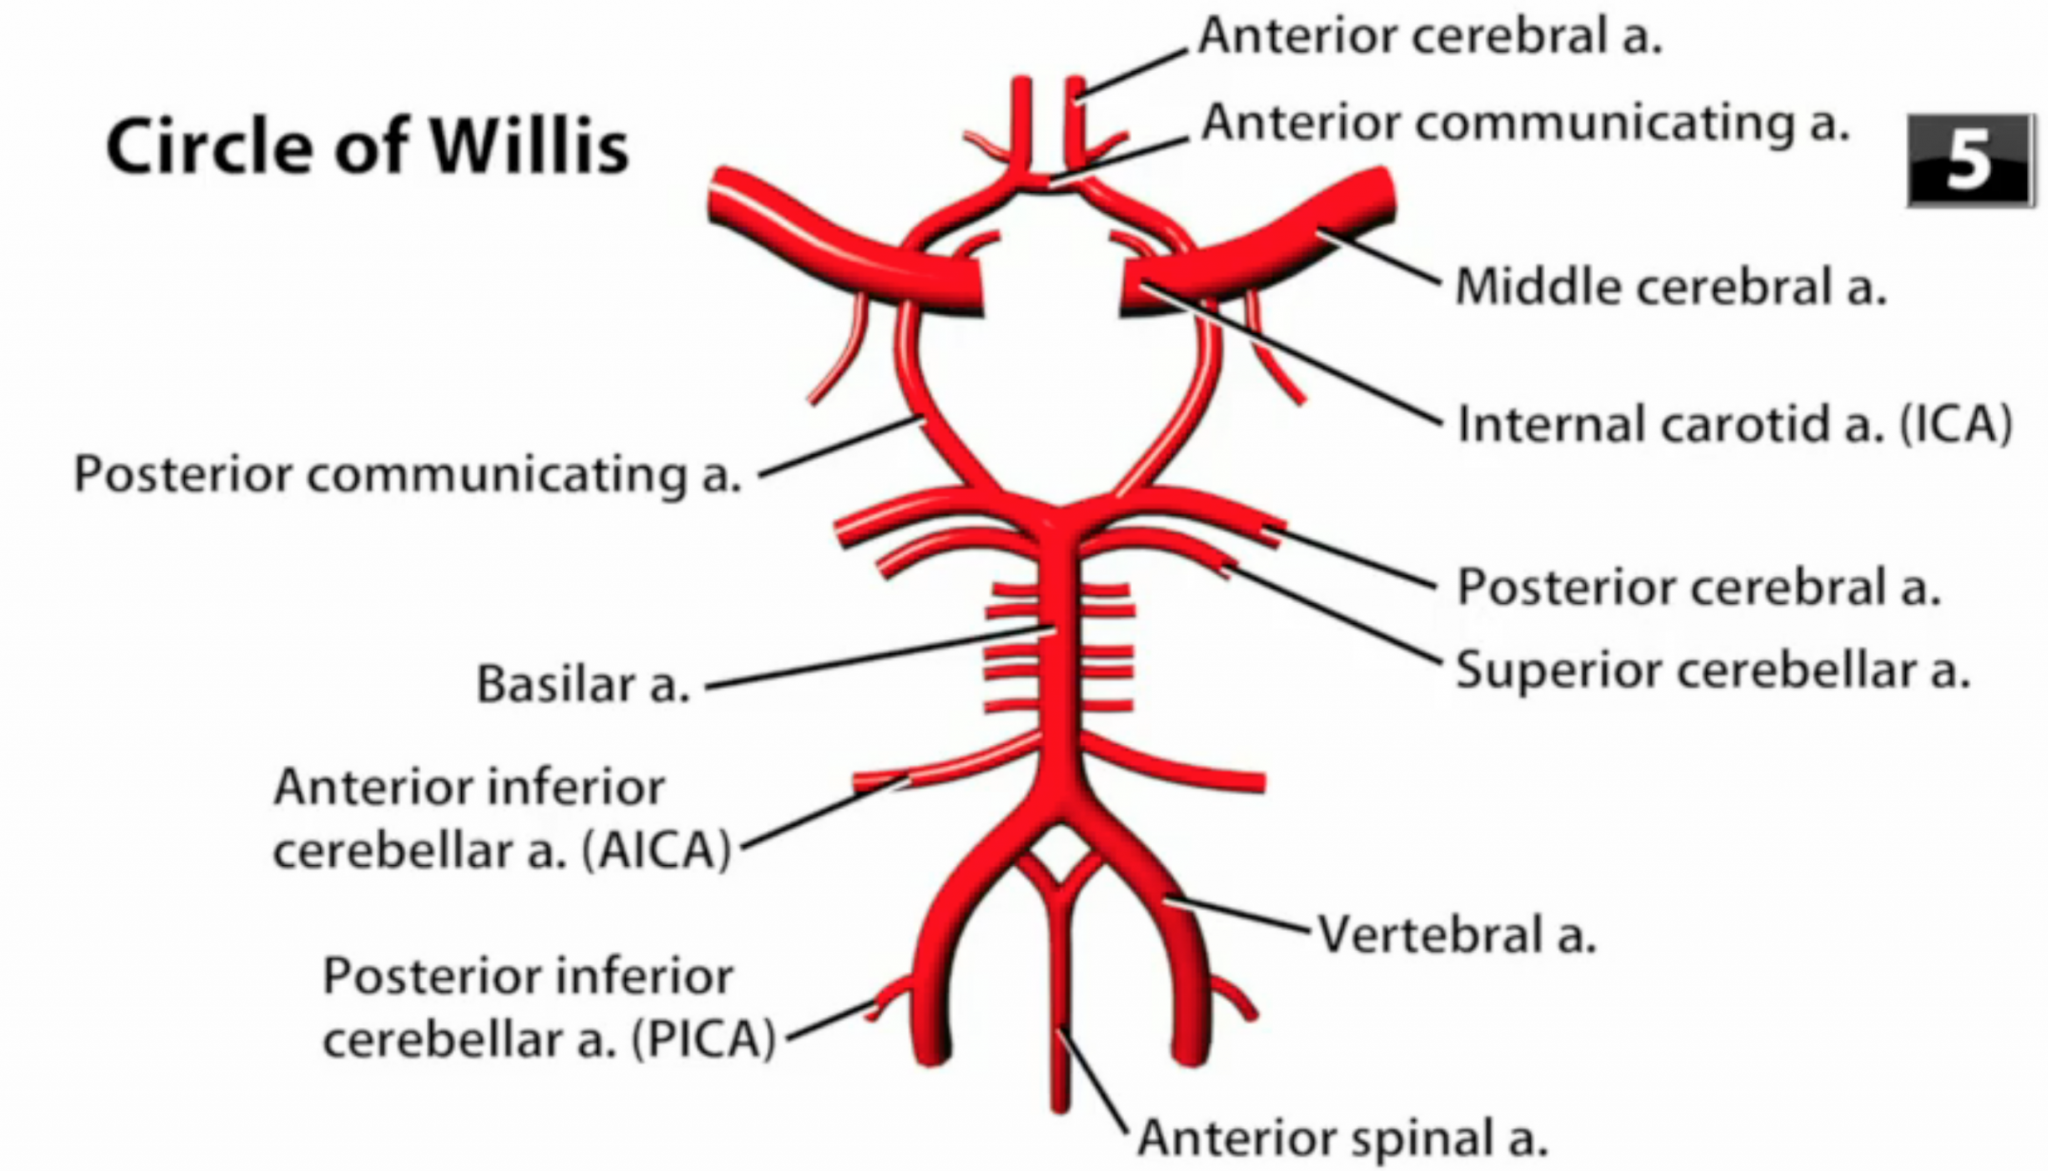 Circle of Willis - Location, Anatomy, Function and FAQs